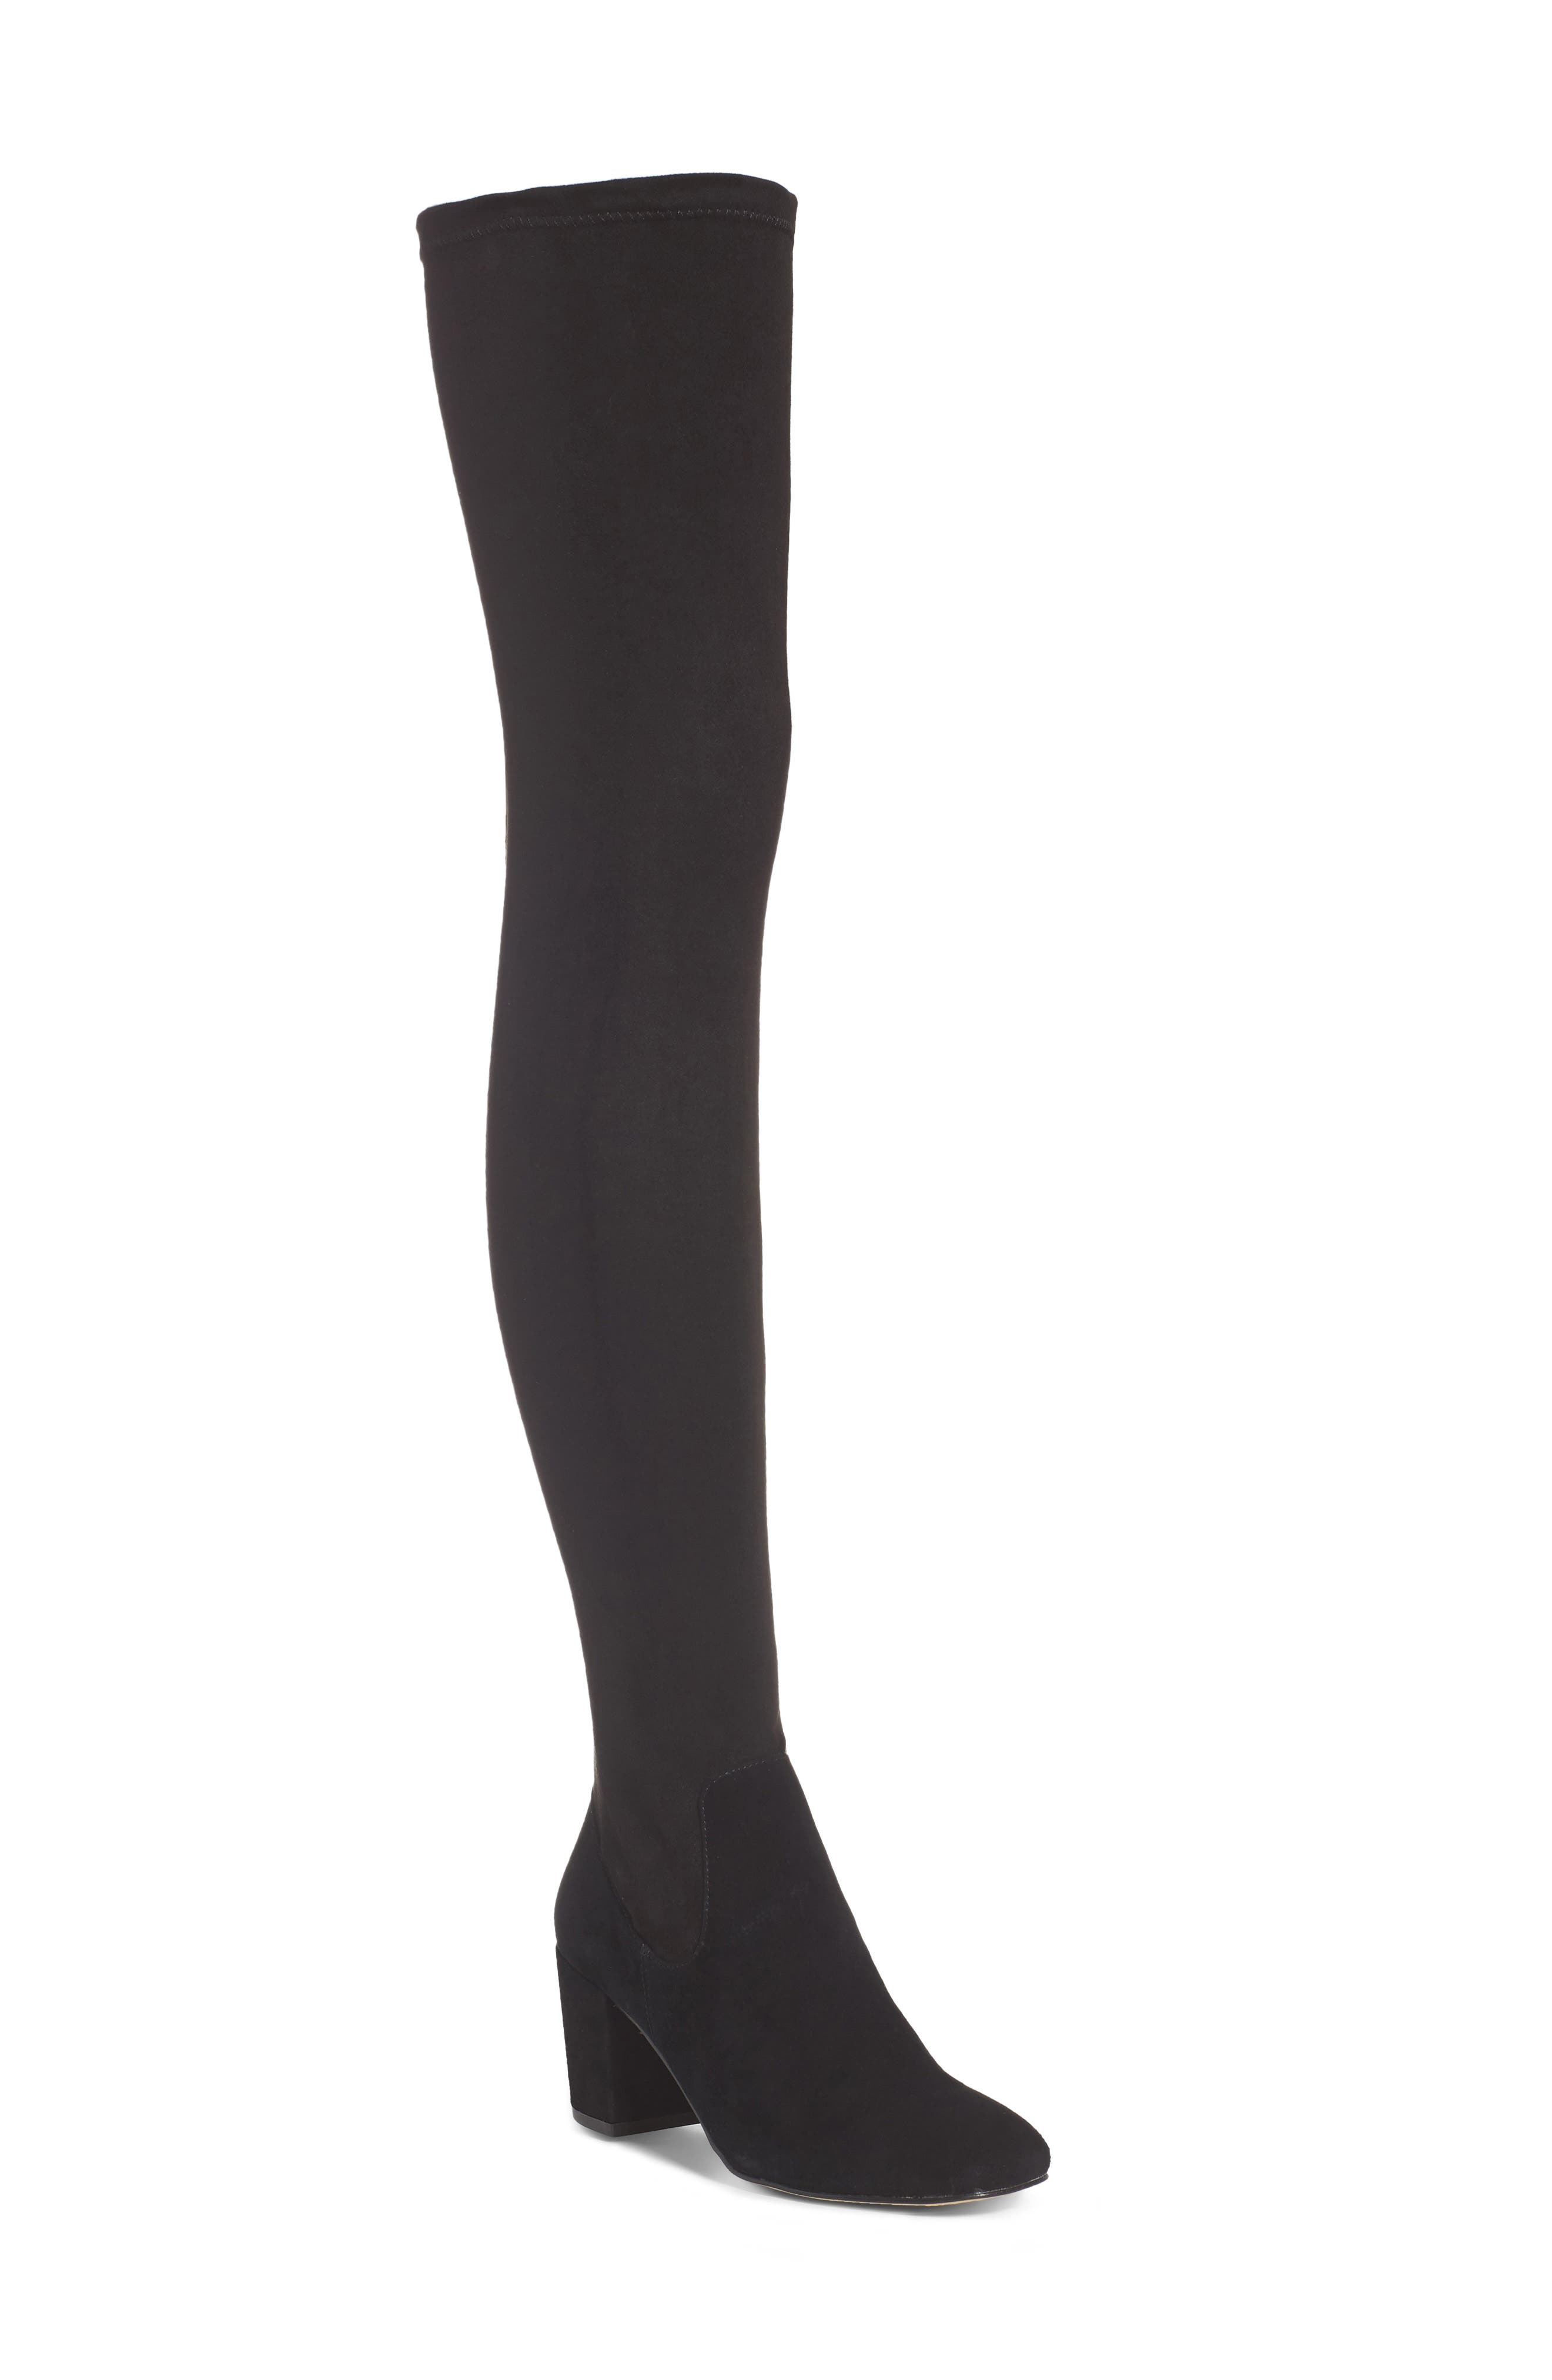 Main Image - M4D3 Sobrina Over the Knee Boot (Women)